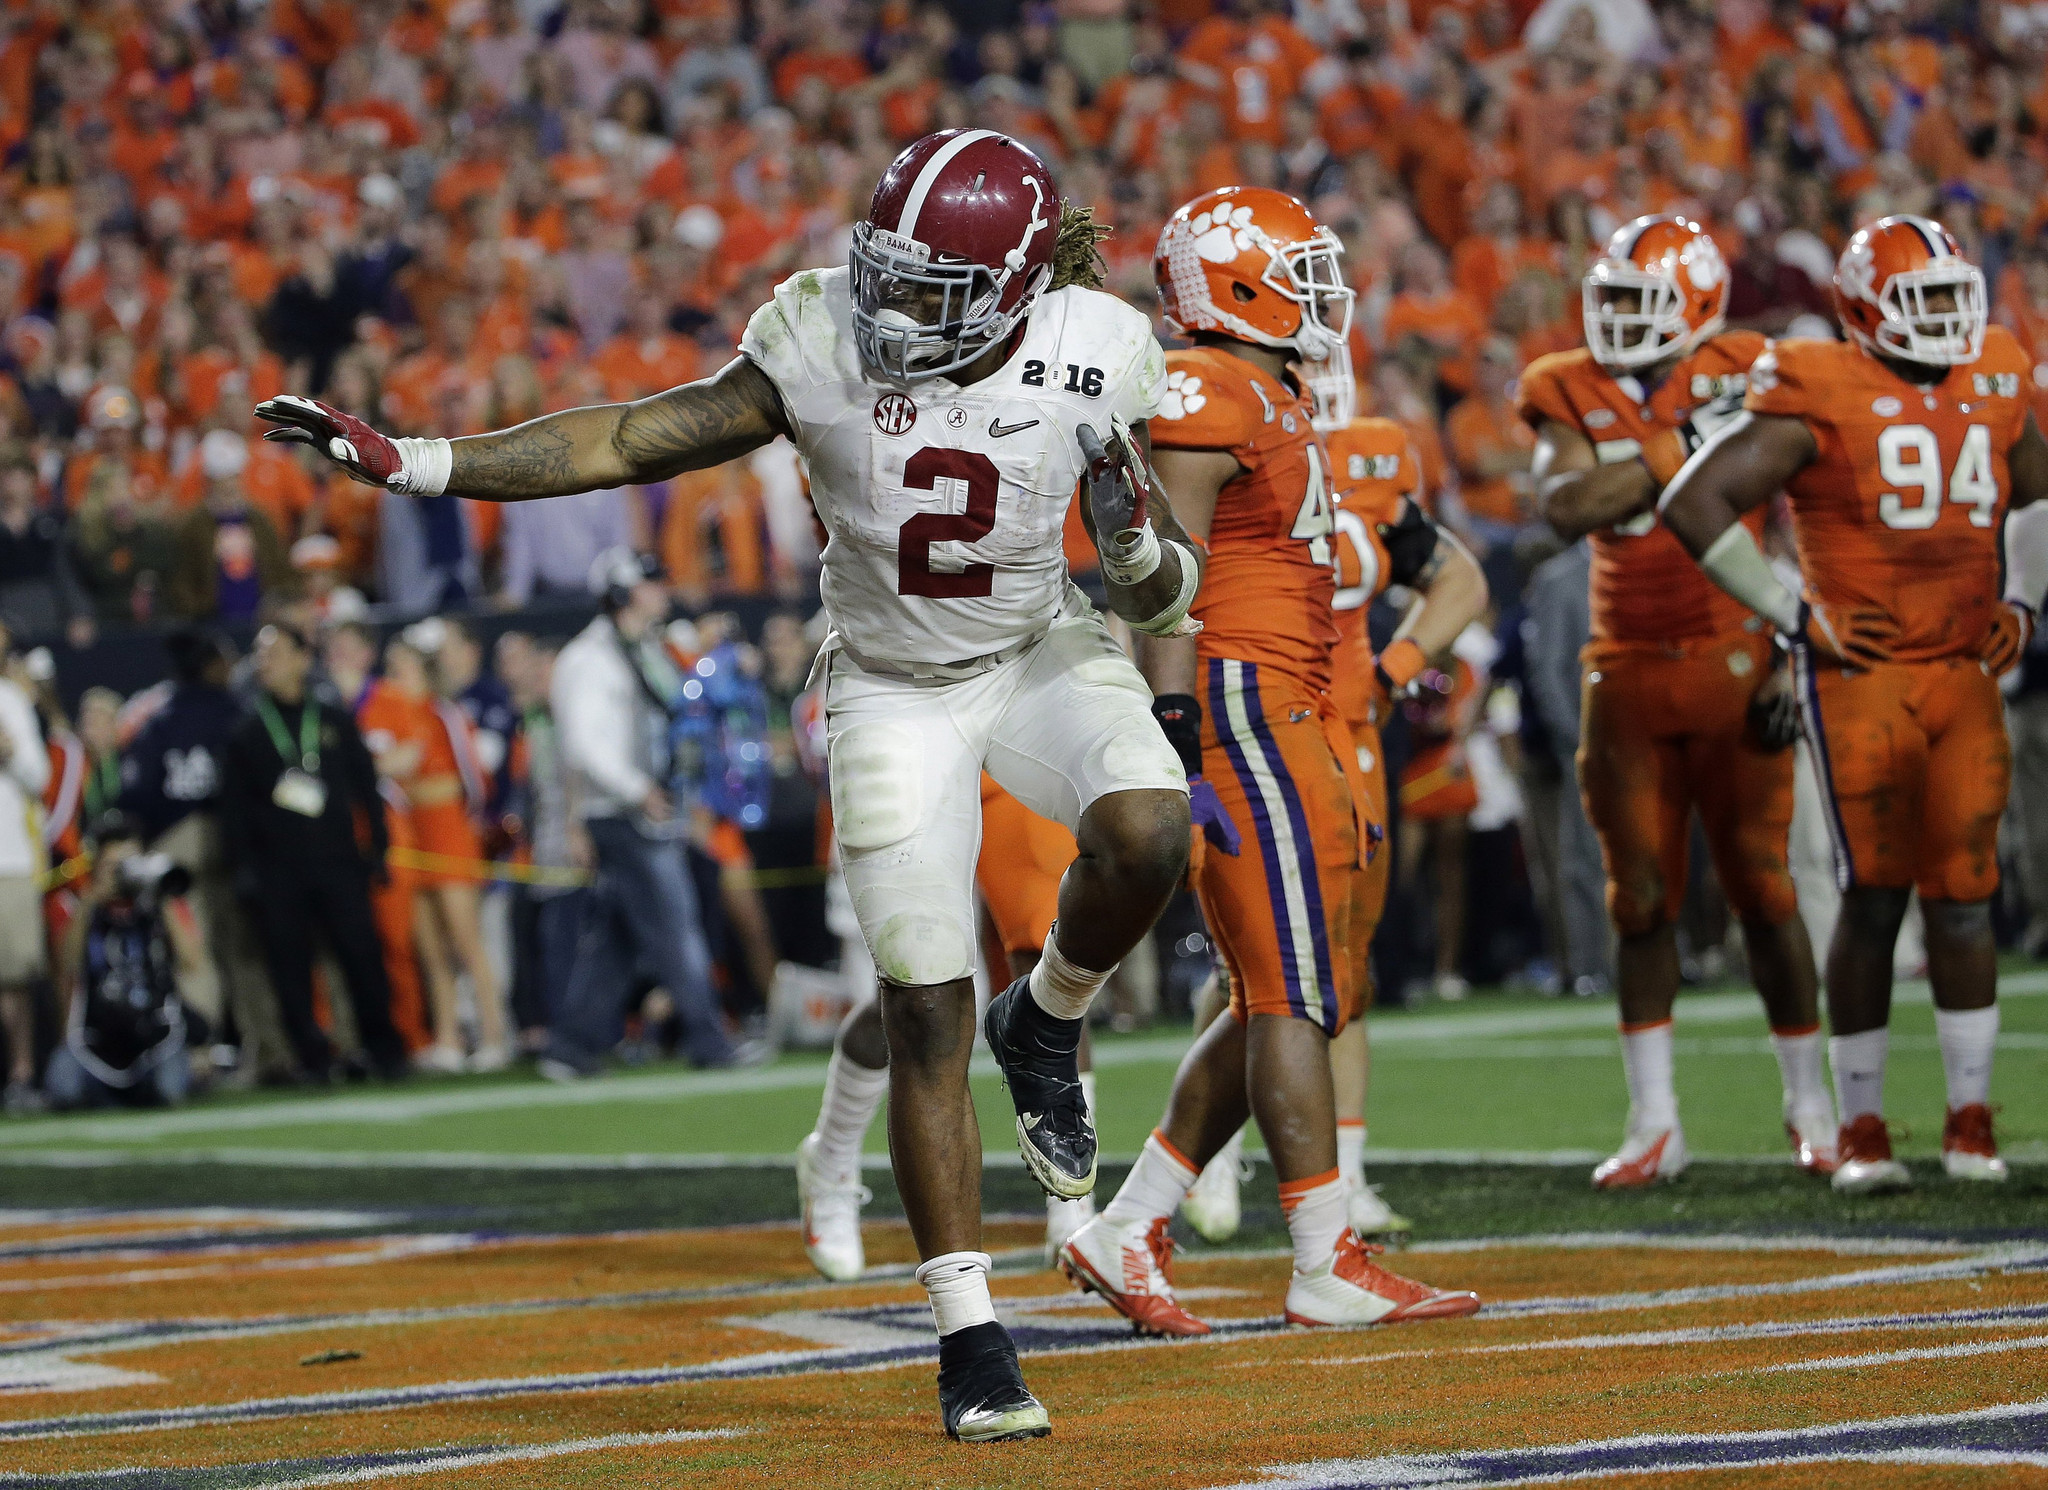 Sfl-top-15-players-the-dolphins-should-target-on-day-2-of-draft-20160429